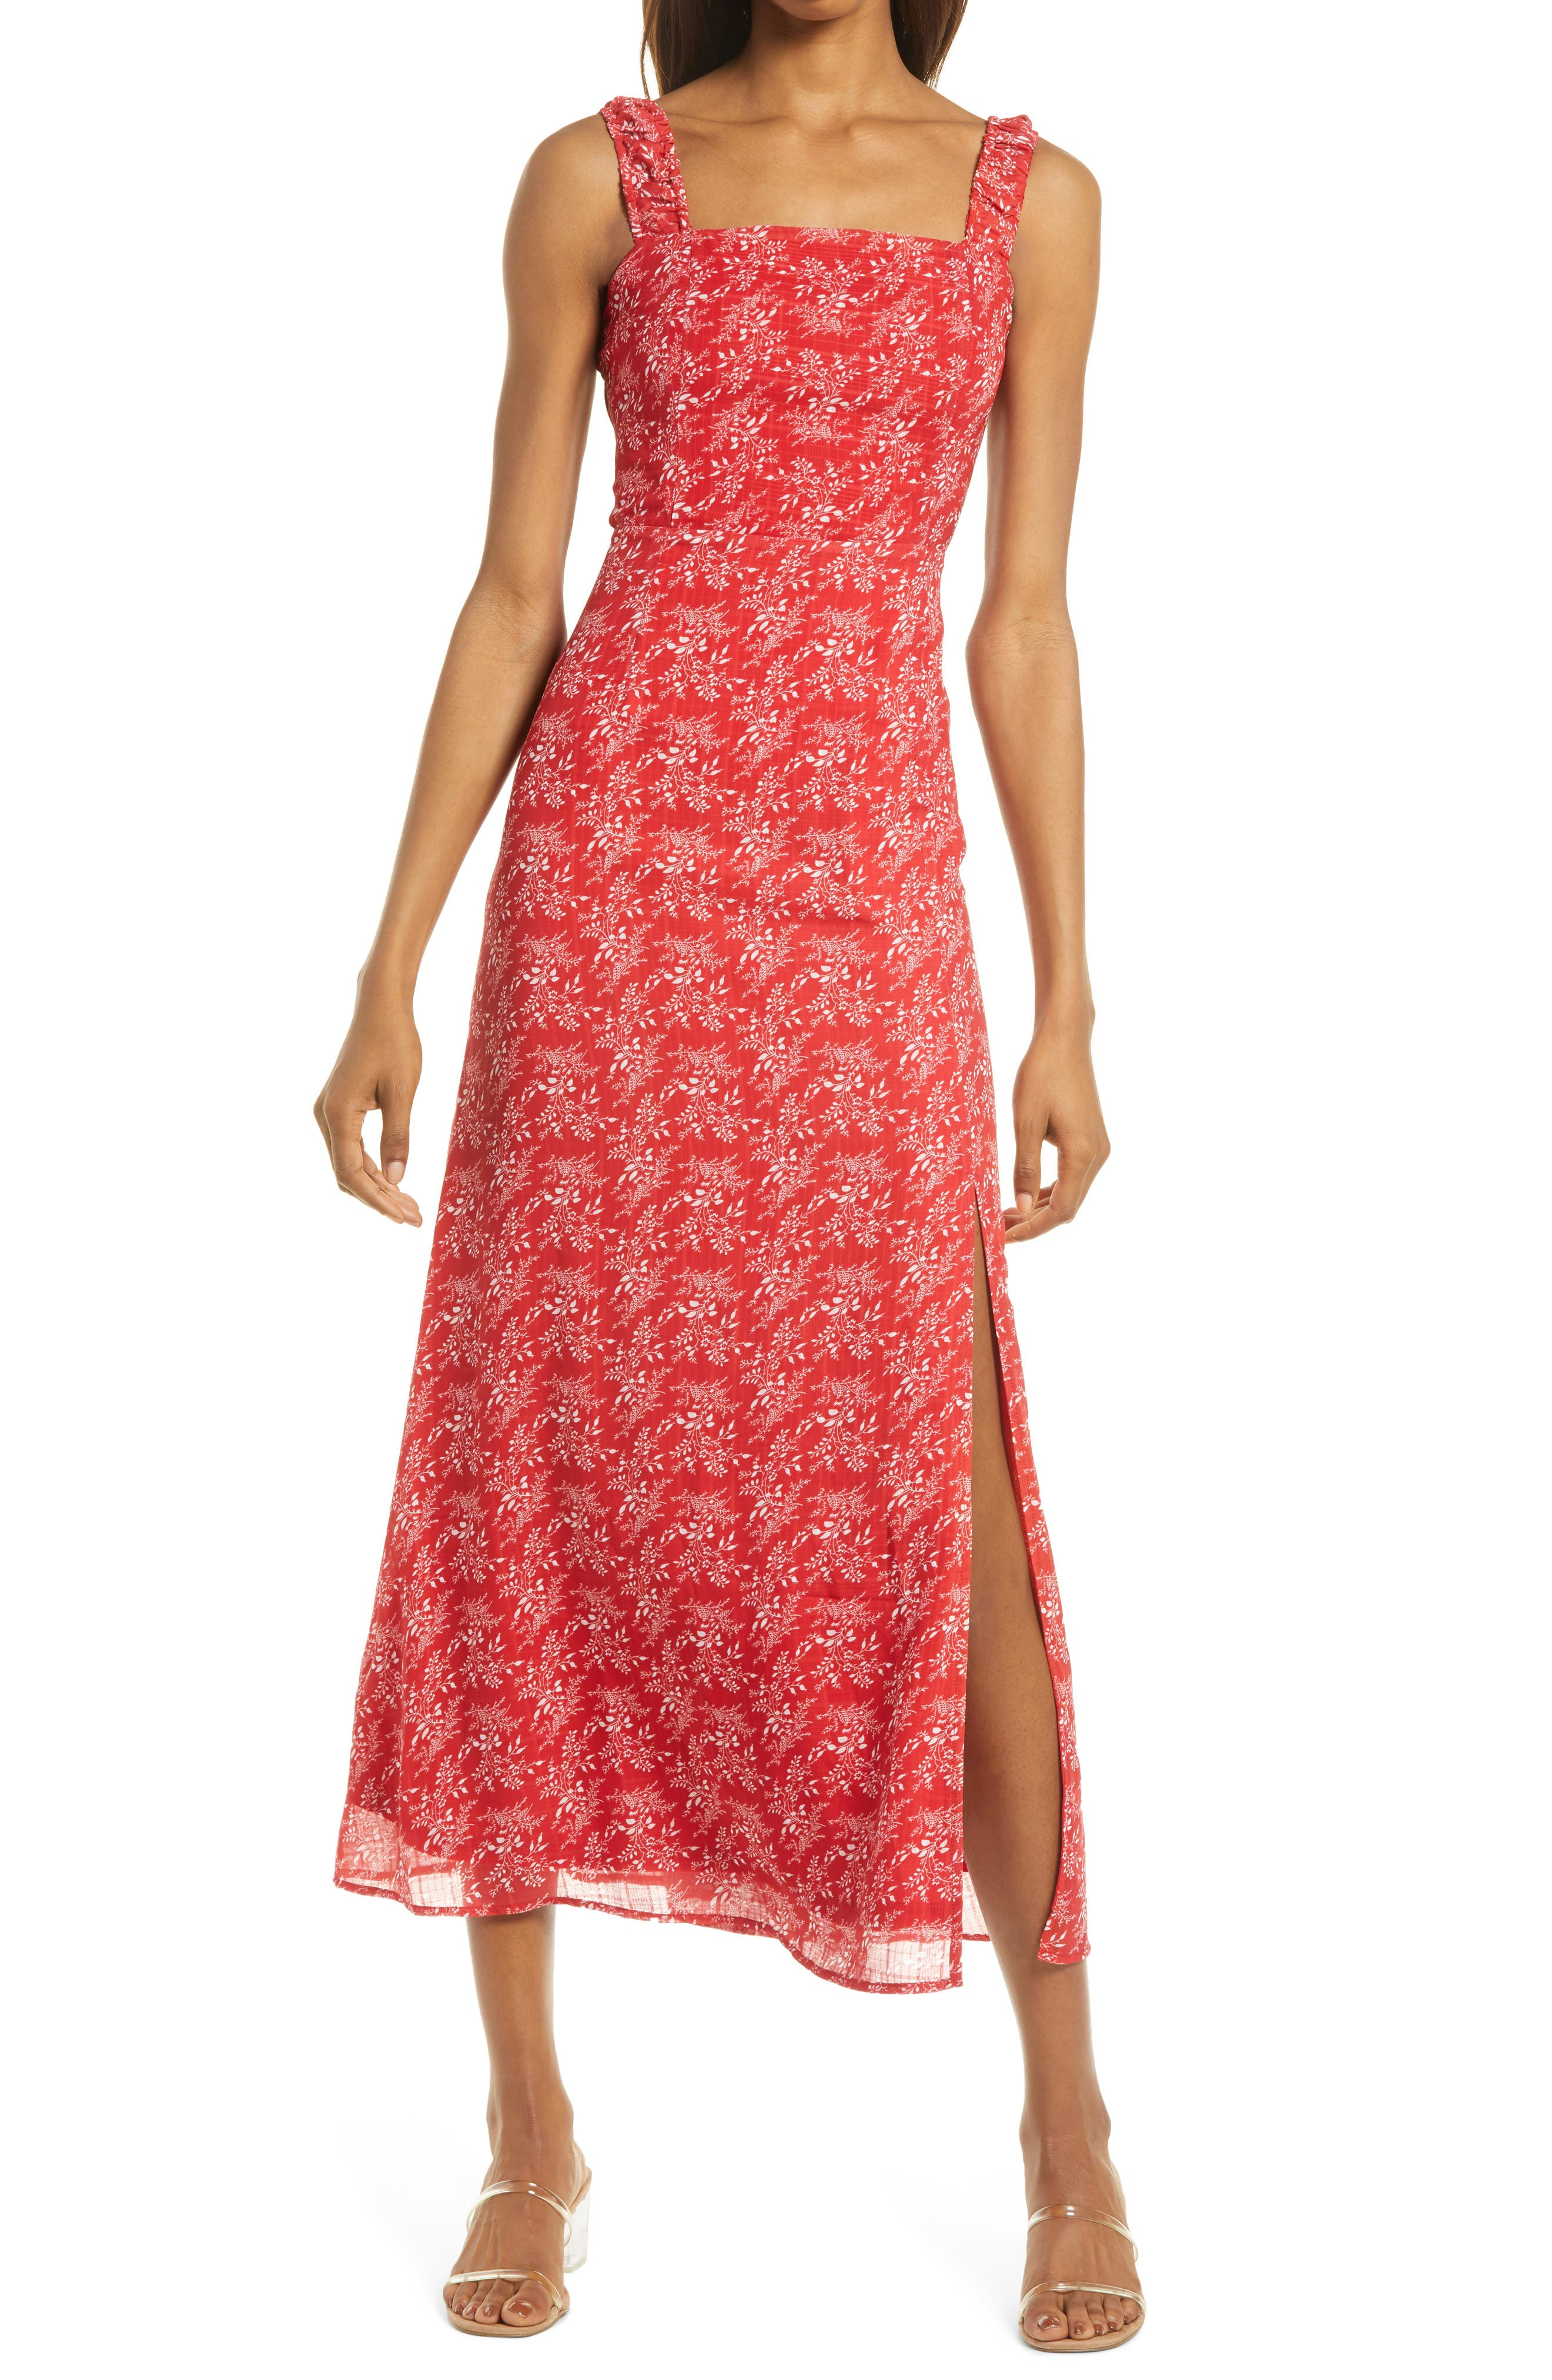 Back To Backless Floral Print Sleeveless Dress